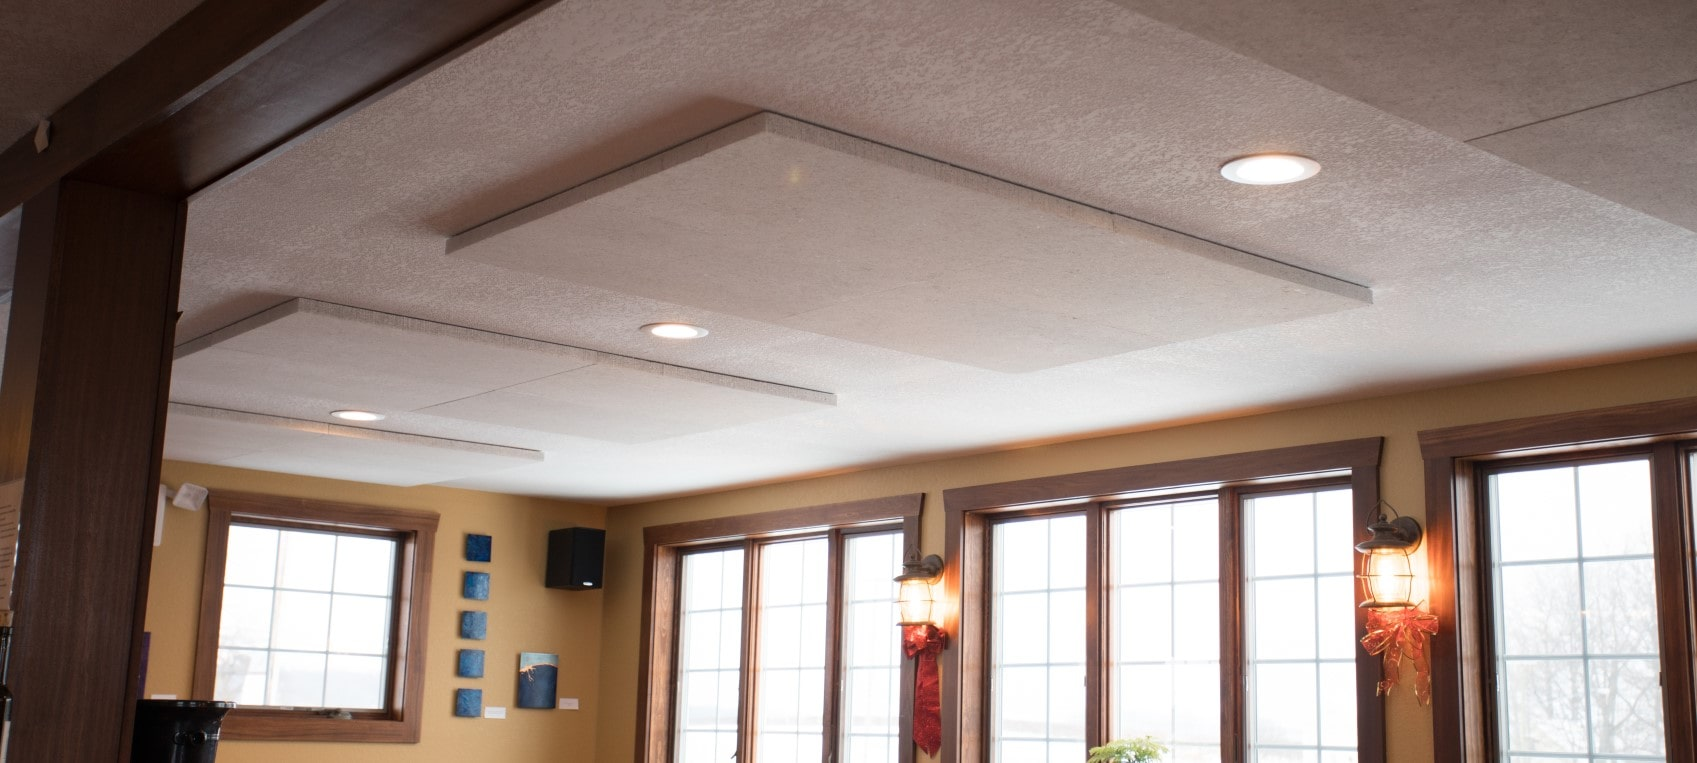 Sound Acoustic Solutions for Ceilings